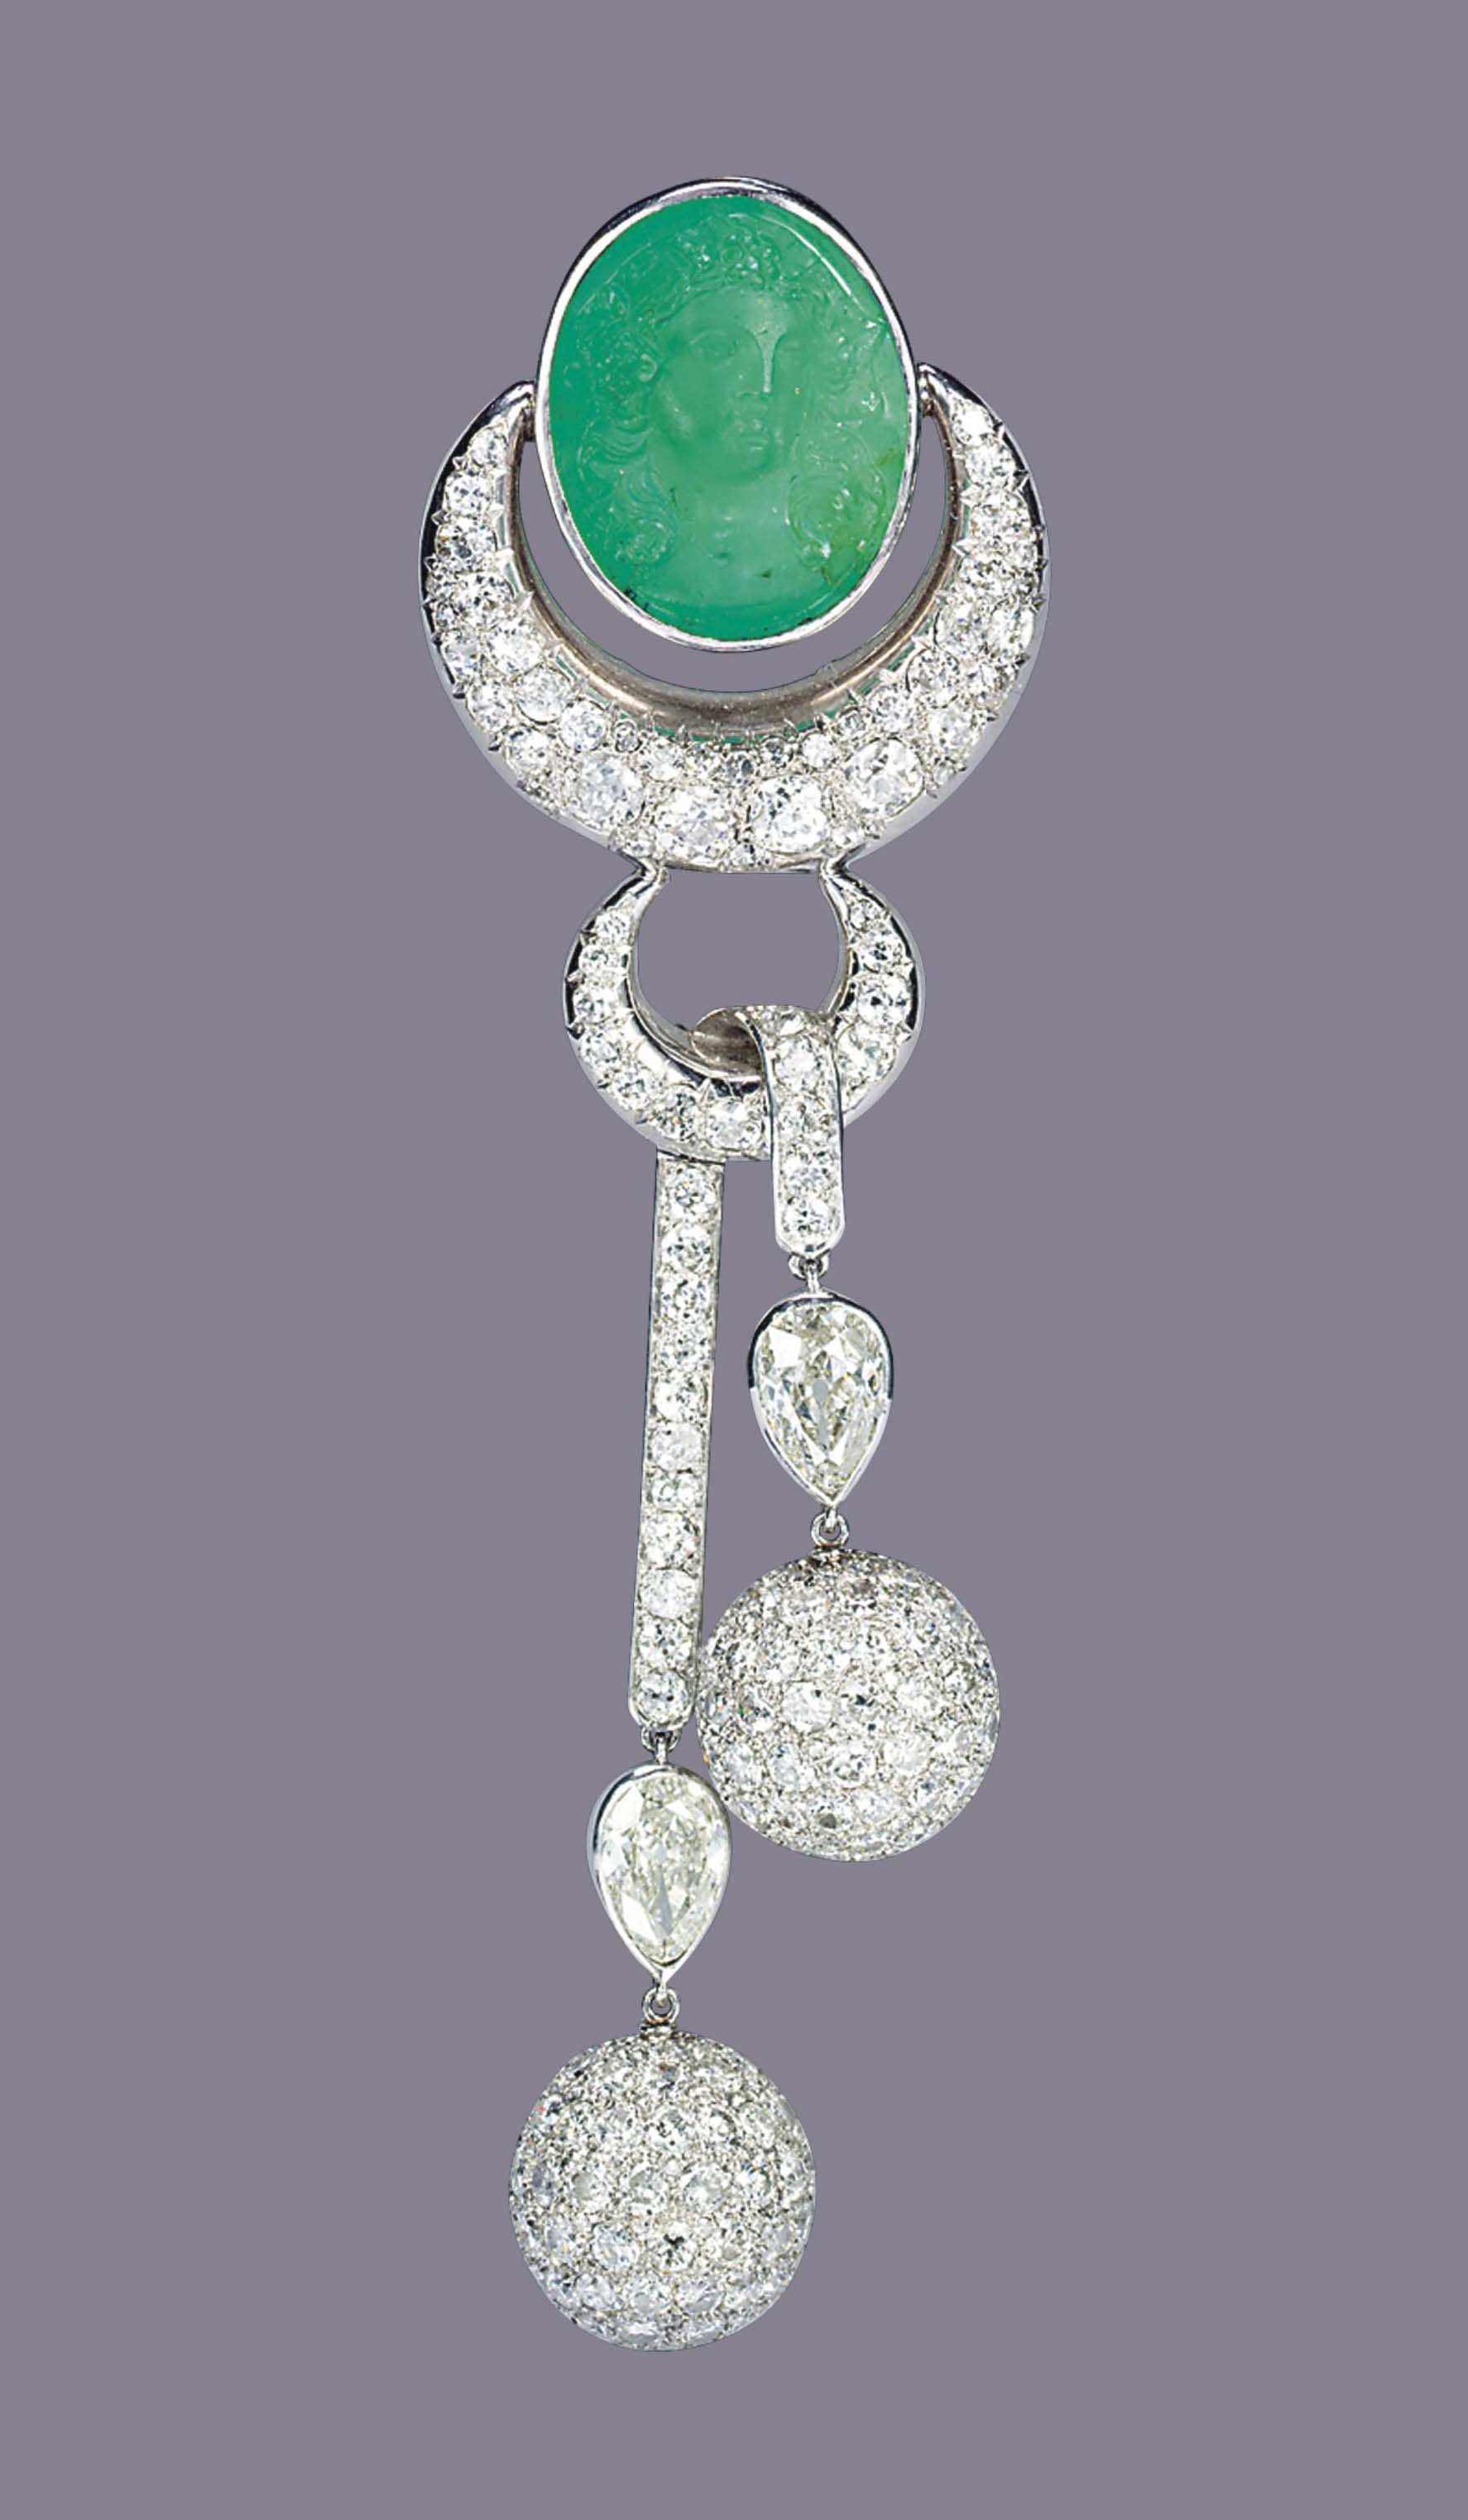 AN EMERALD AND DIAMOND BROOCH, BY SUZANNE BELPERRON